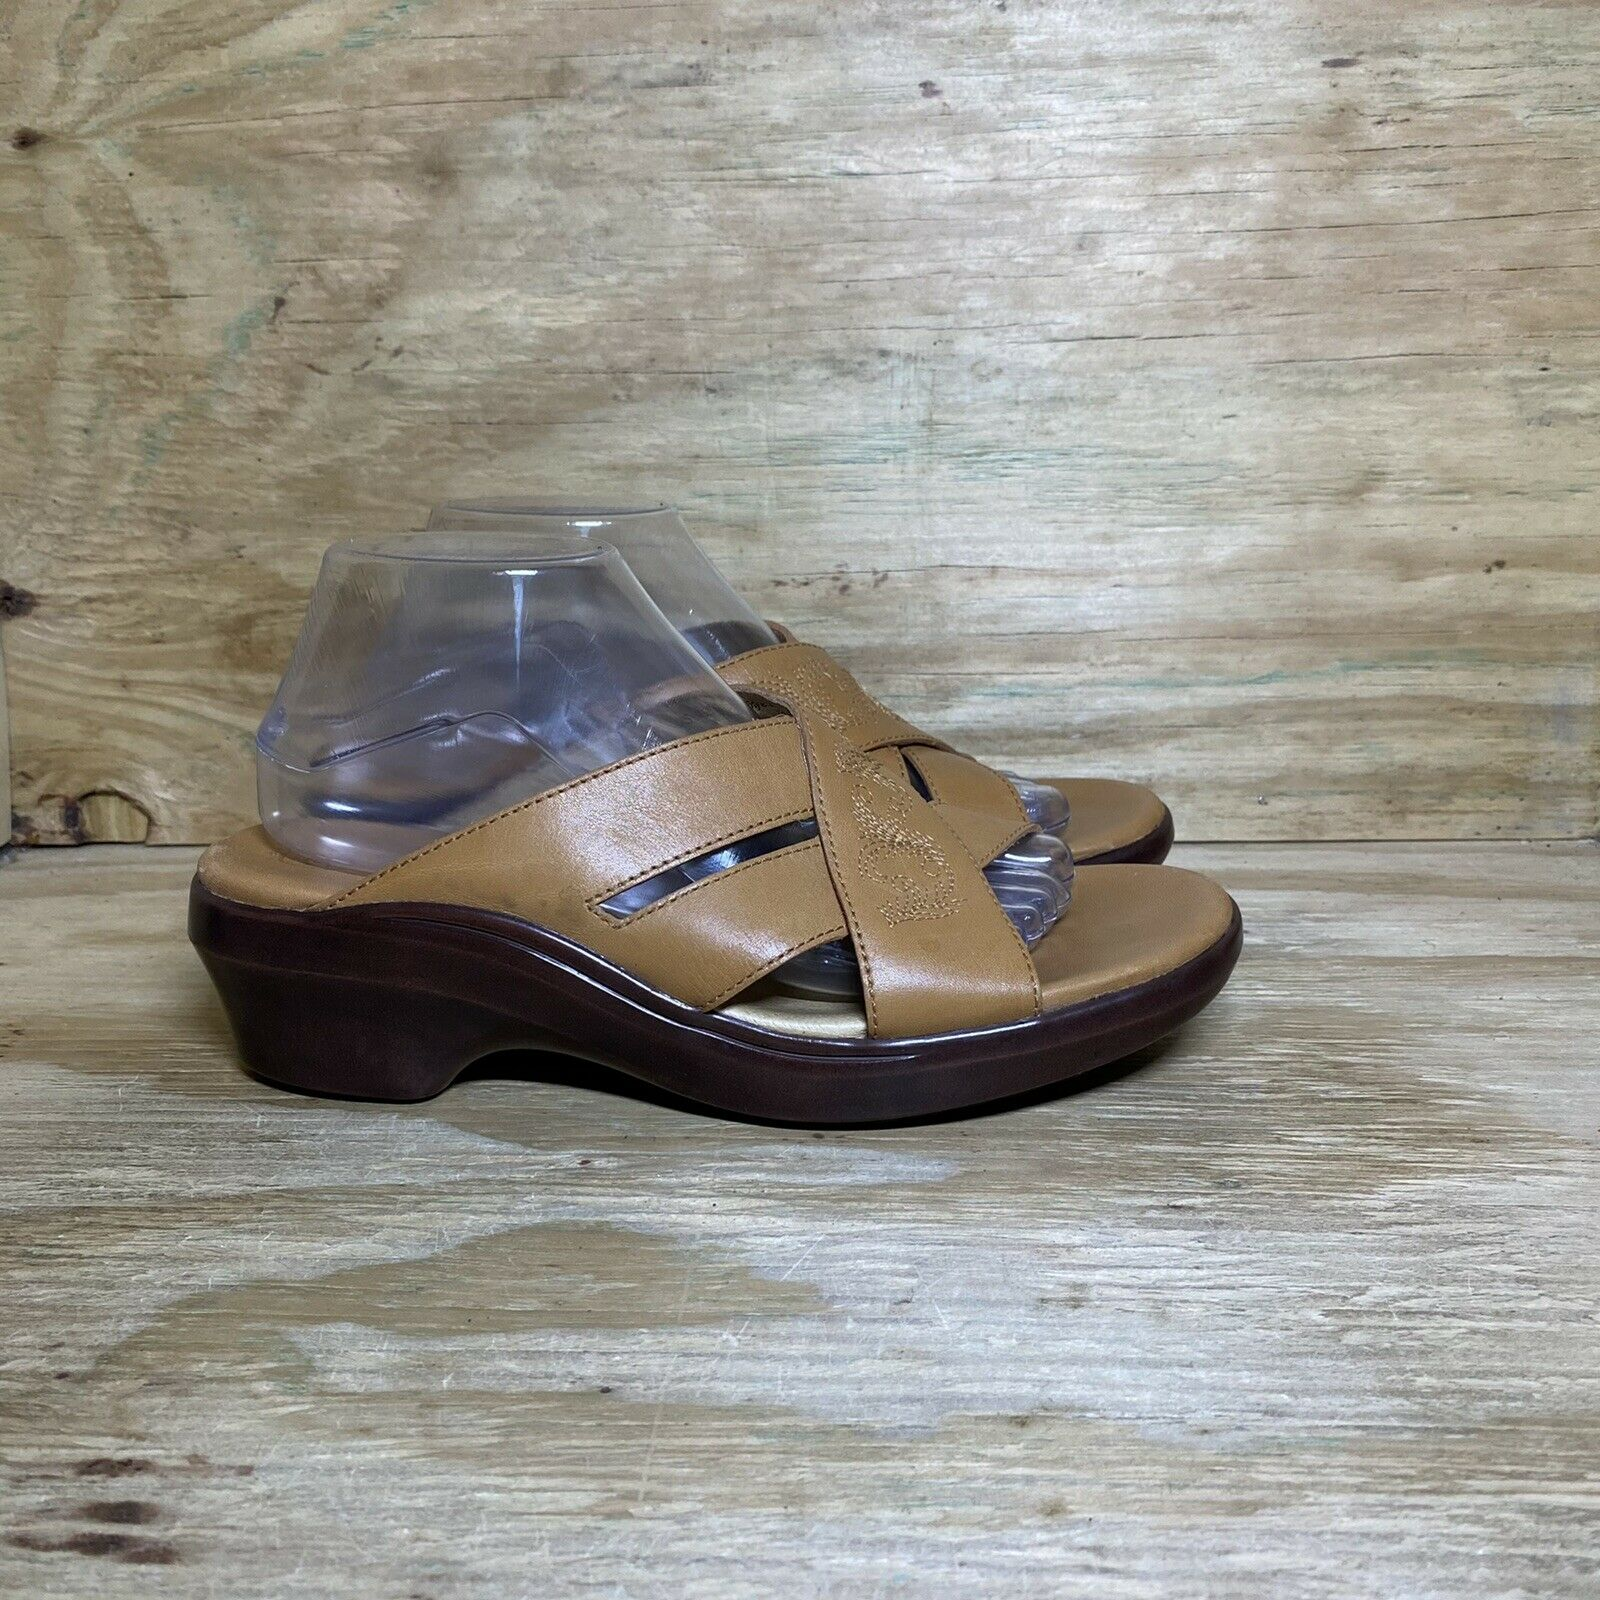 Ariat Leather Embroidered Slide Clog Sandals, Women's Size 9.5B, Brown Tan